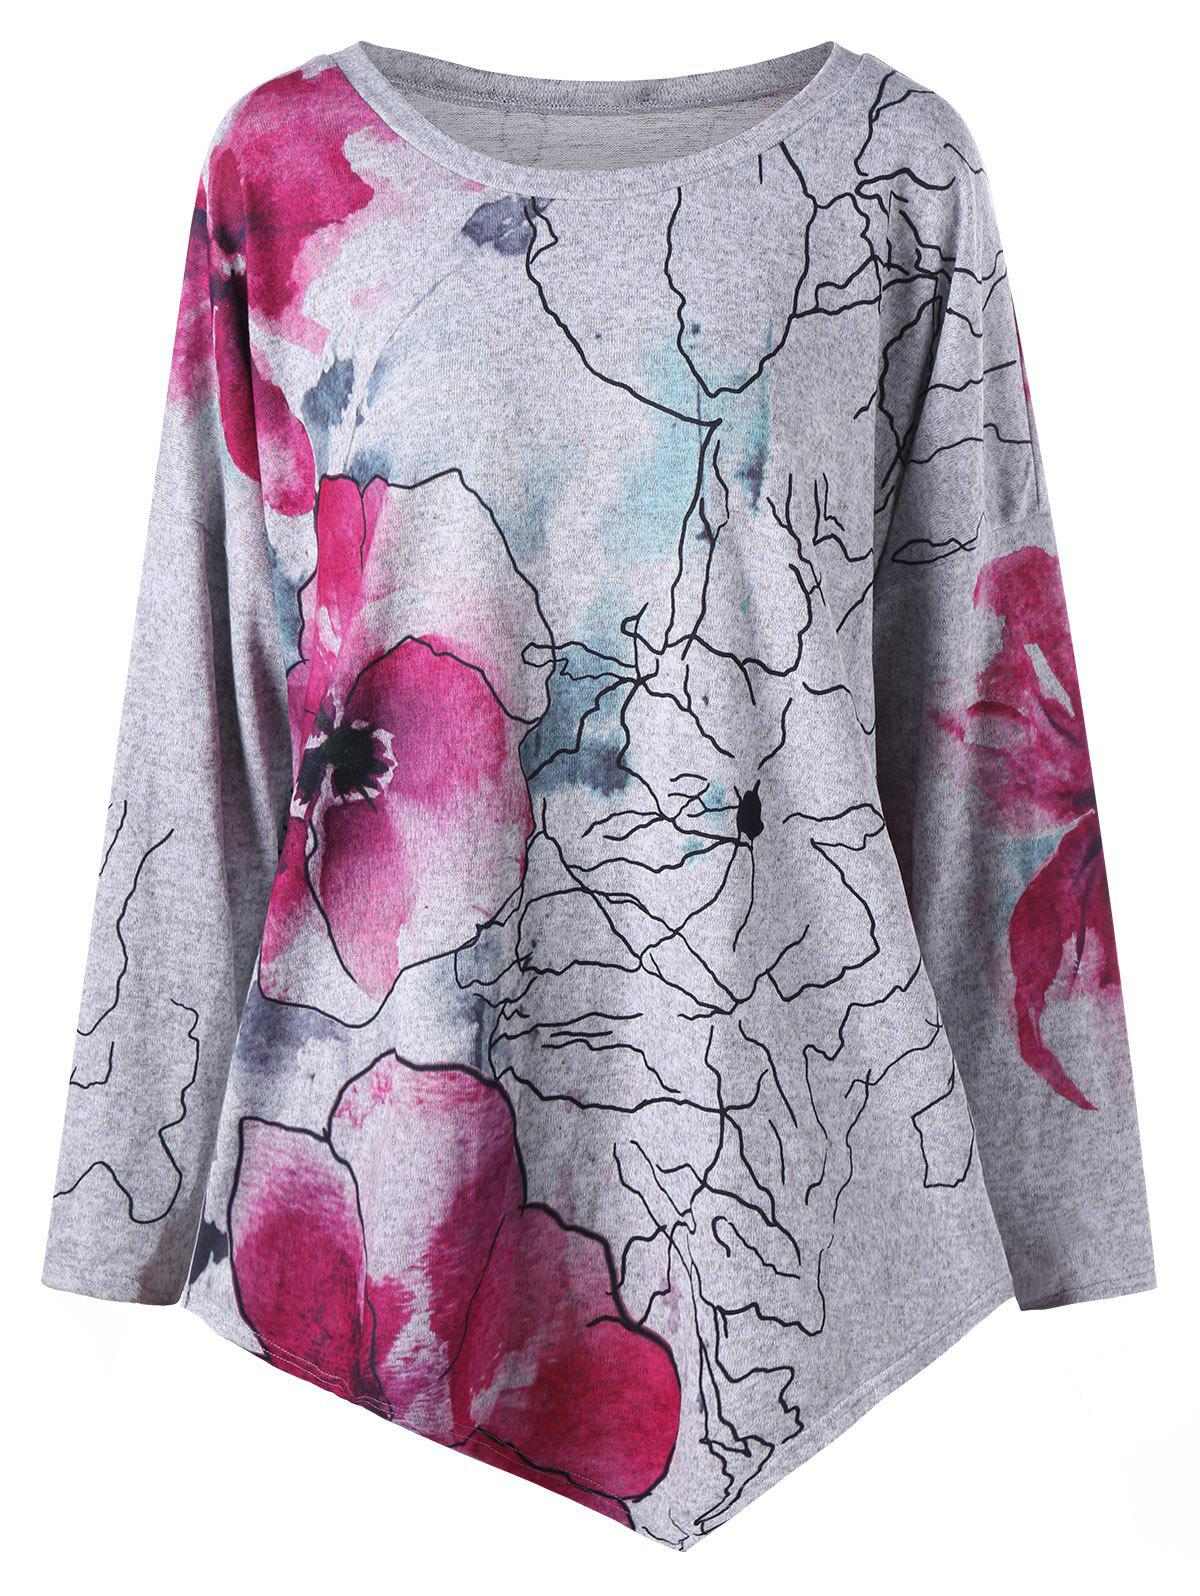 Plus Size Ink Painting Floral Drop Shoulder Asymmetric TopWOMEN<br><br>Size: 4XL; Color: GRAY; Material: Cotton,Polyester; Shirt Length: Long; Sleeve Length: Full; Collar: Round Neck; Style: Fashion; Season: Fall,Spring; Pattern Type: Floral; Weight: 0.3000kg; Package Contents: 1 x T-shirt;